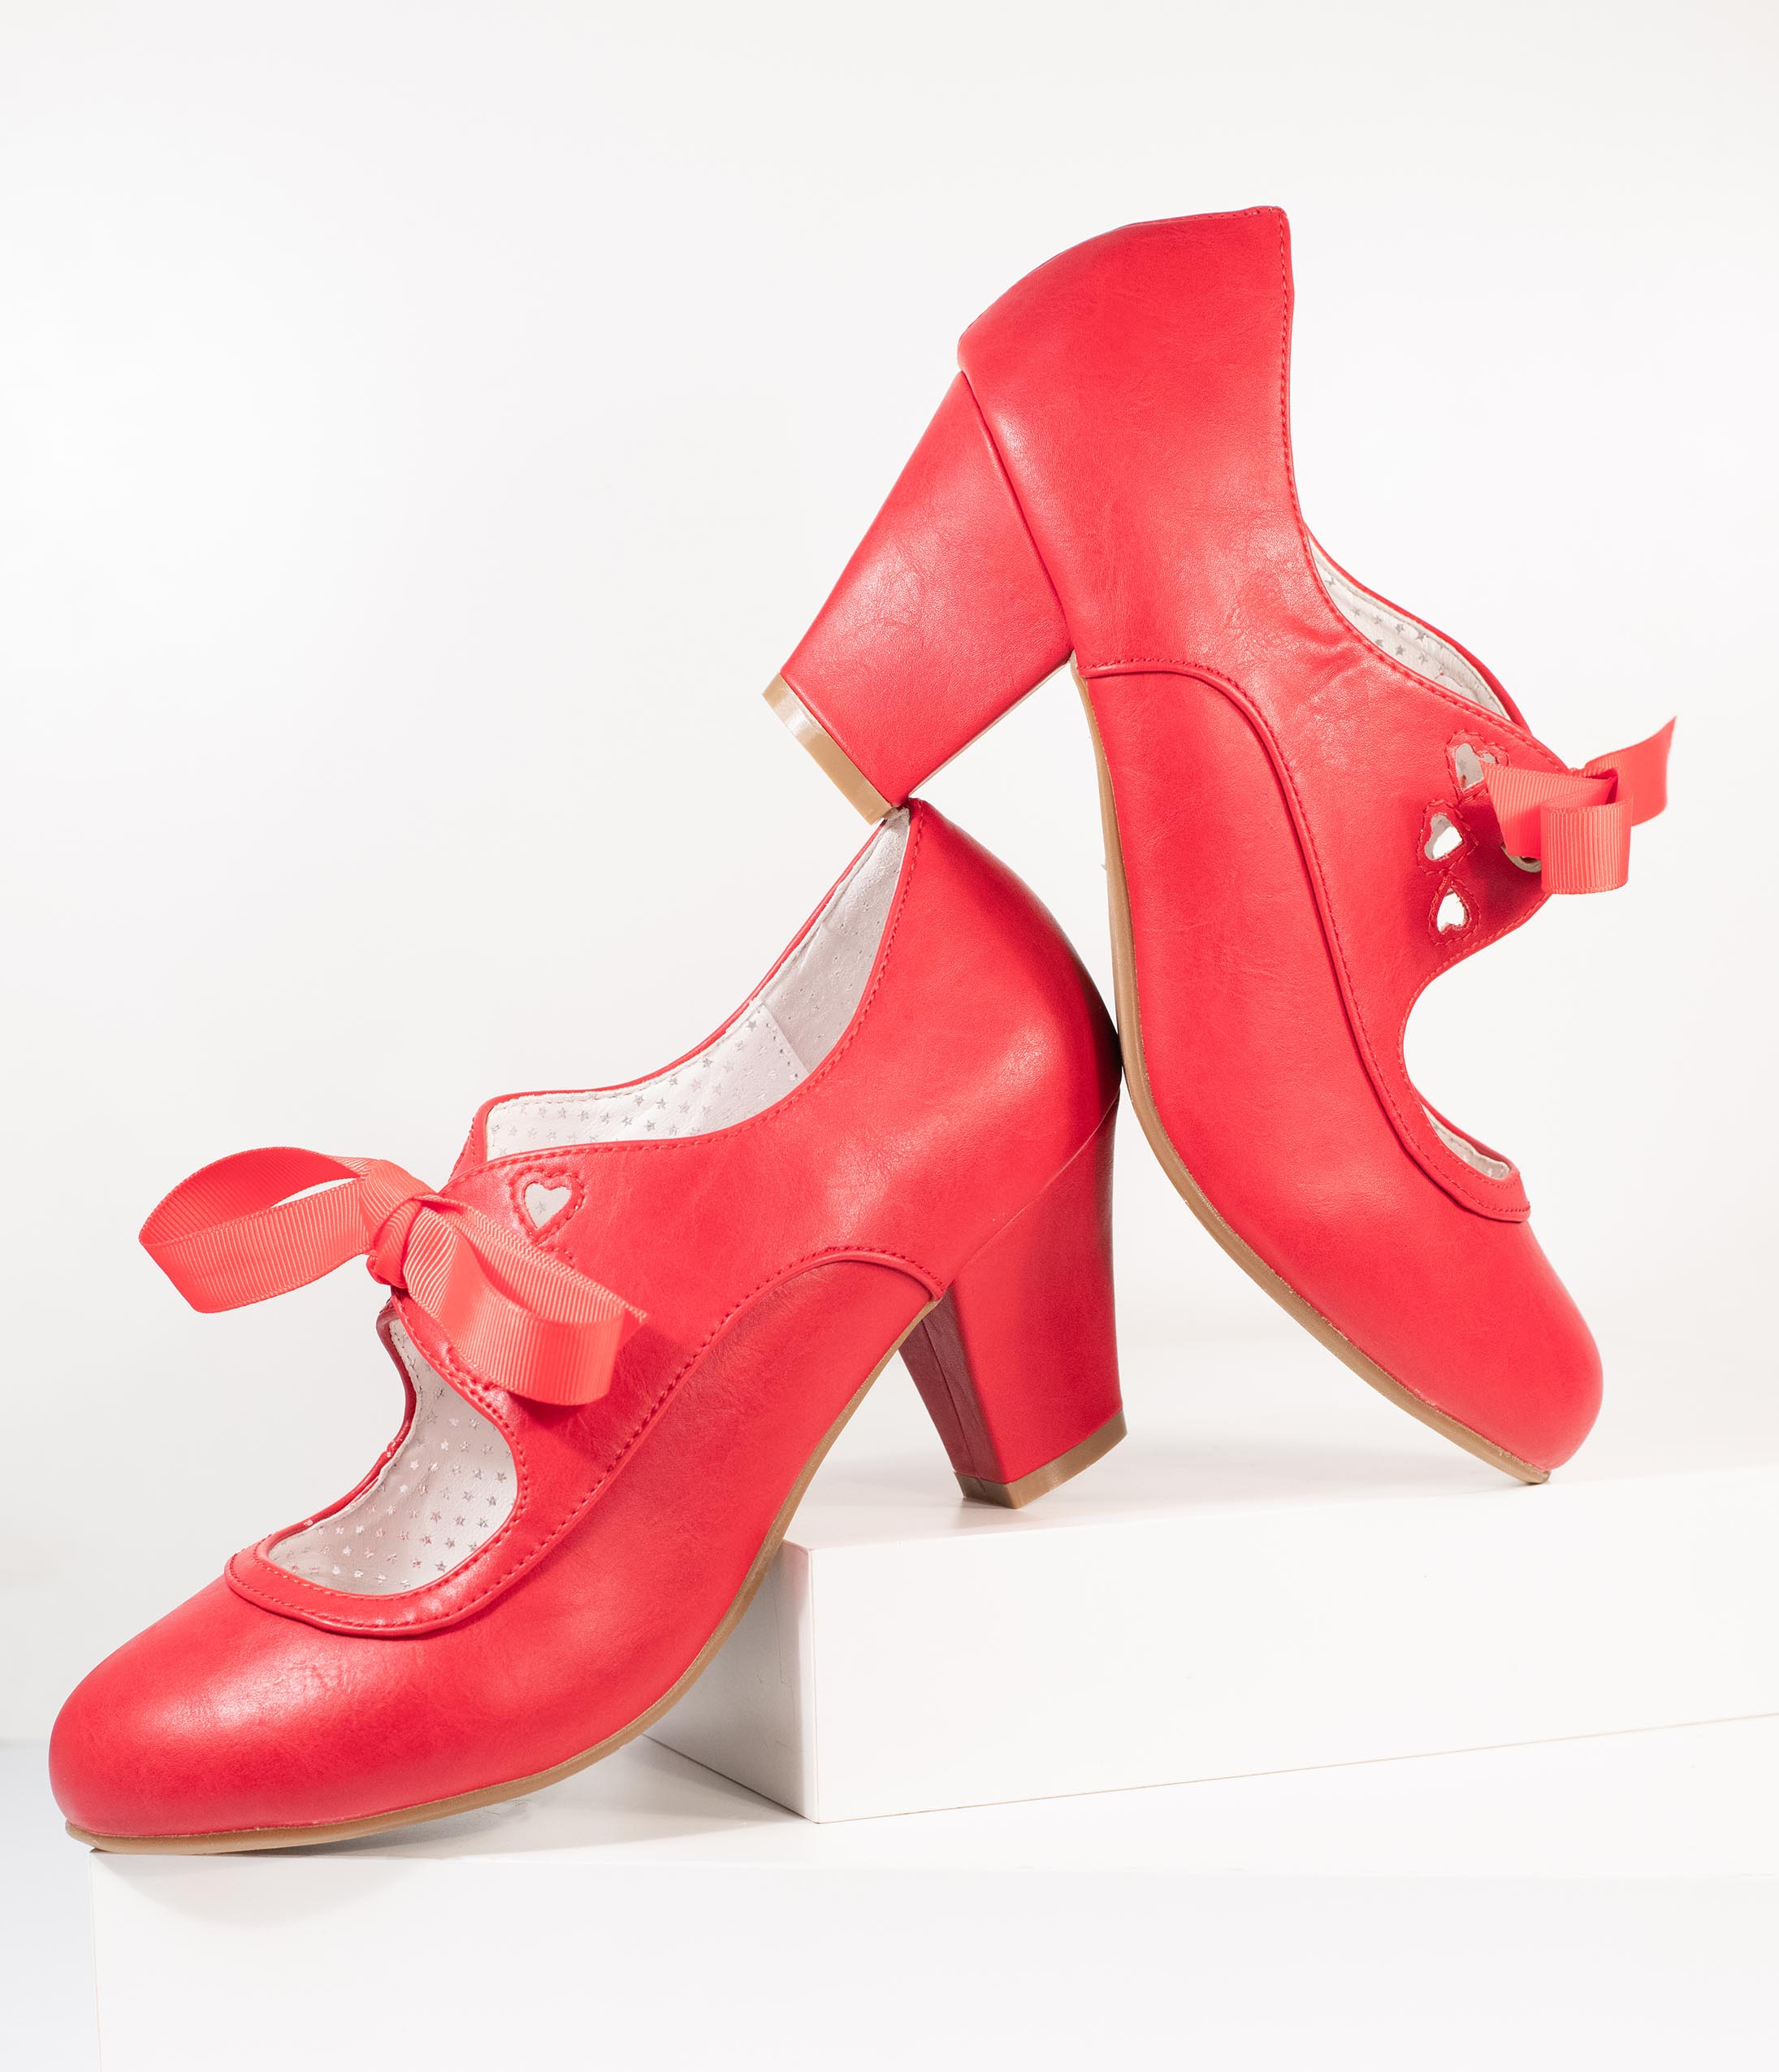 Vintage Style Shoes, Vintage Inspired Shoes Vintage Style Red Leatherette Wiggle Bow Heels $58.00 AT vintagedancer.com